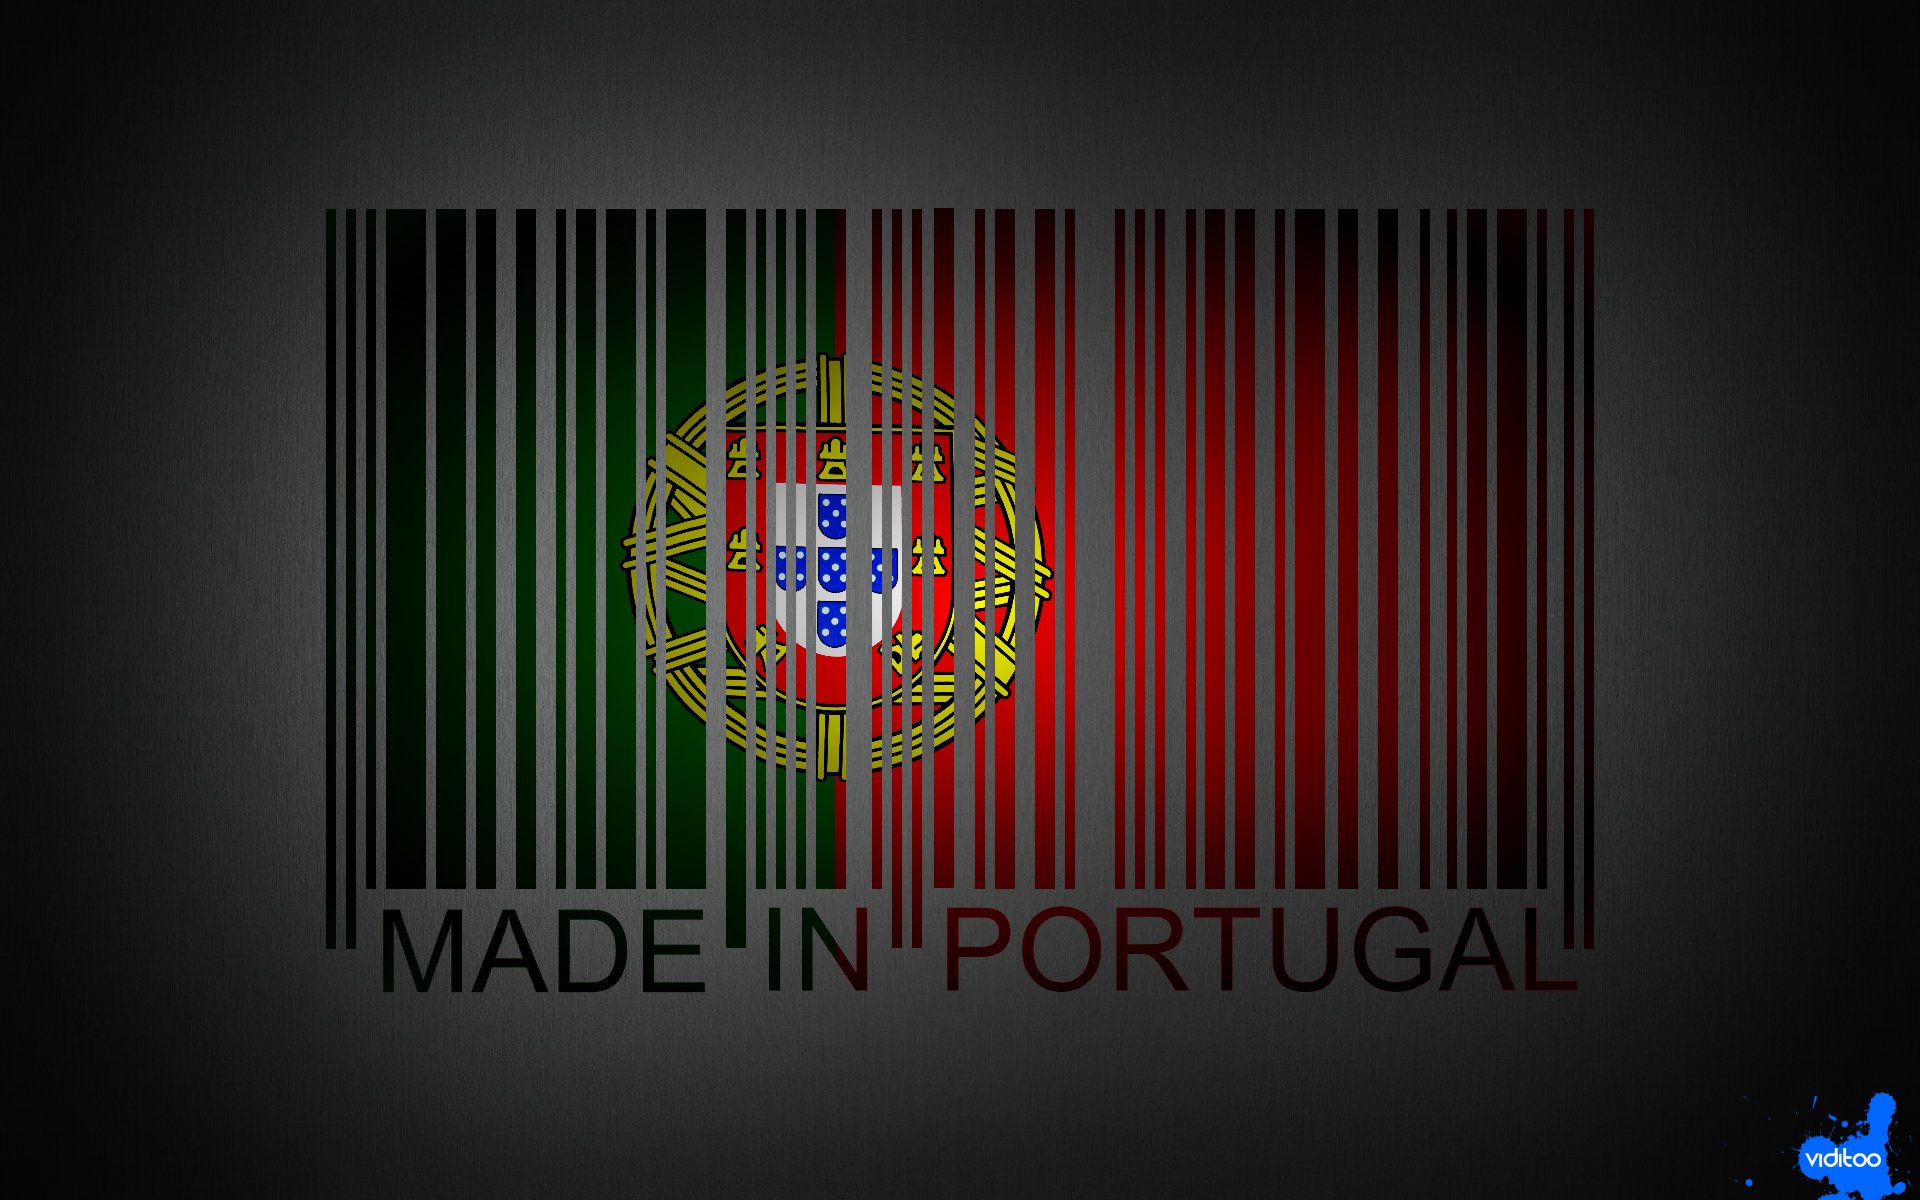 Fonds d'écran Voyages : Europe Portugal Portugal by ViditOo